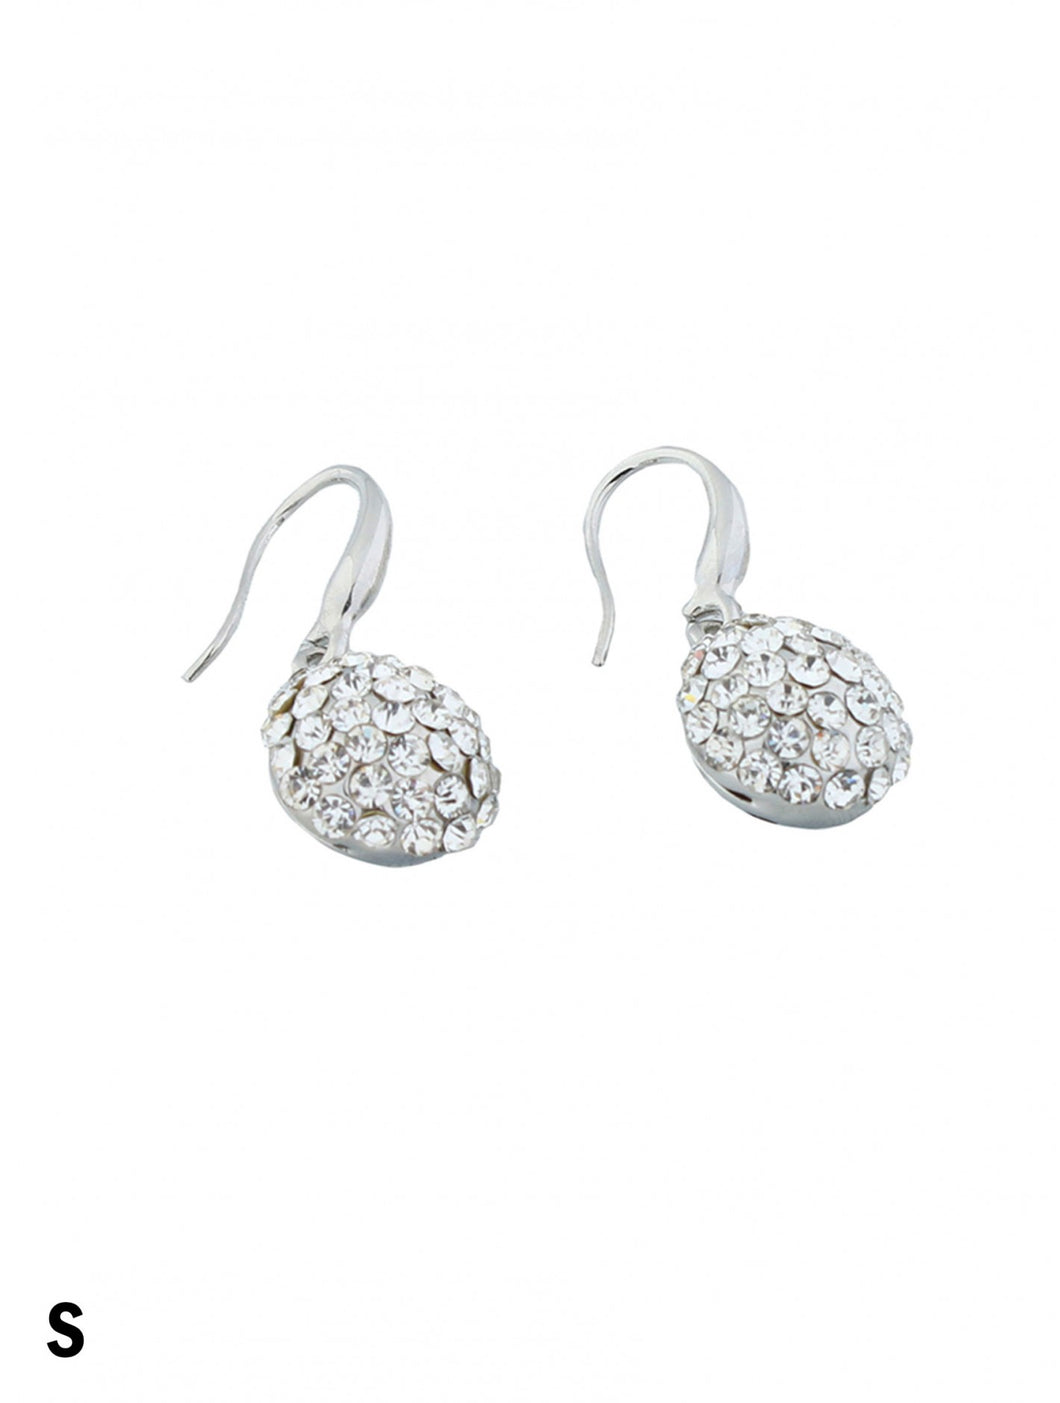 Earrings - Size N/A